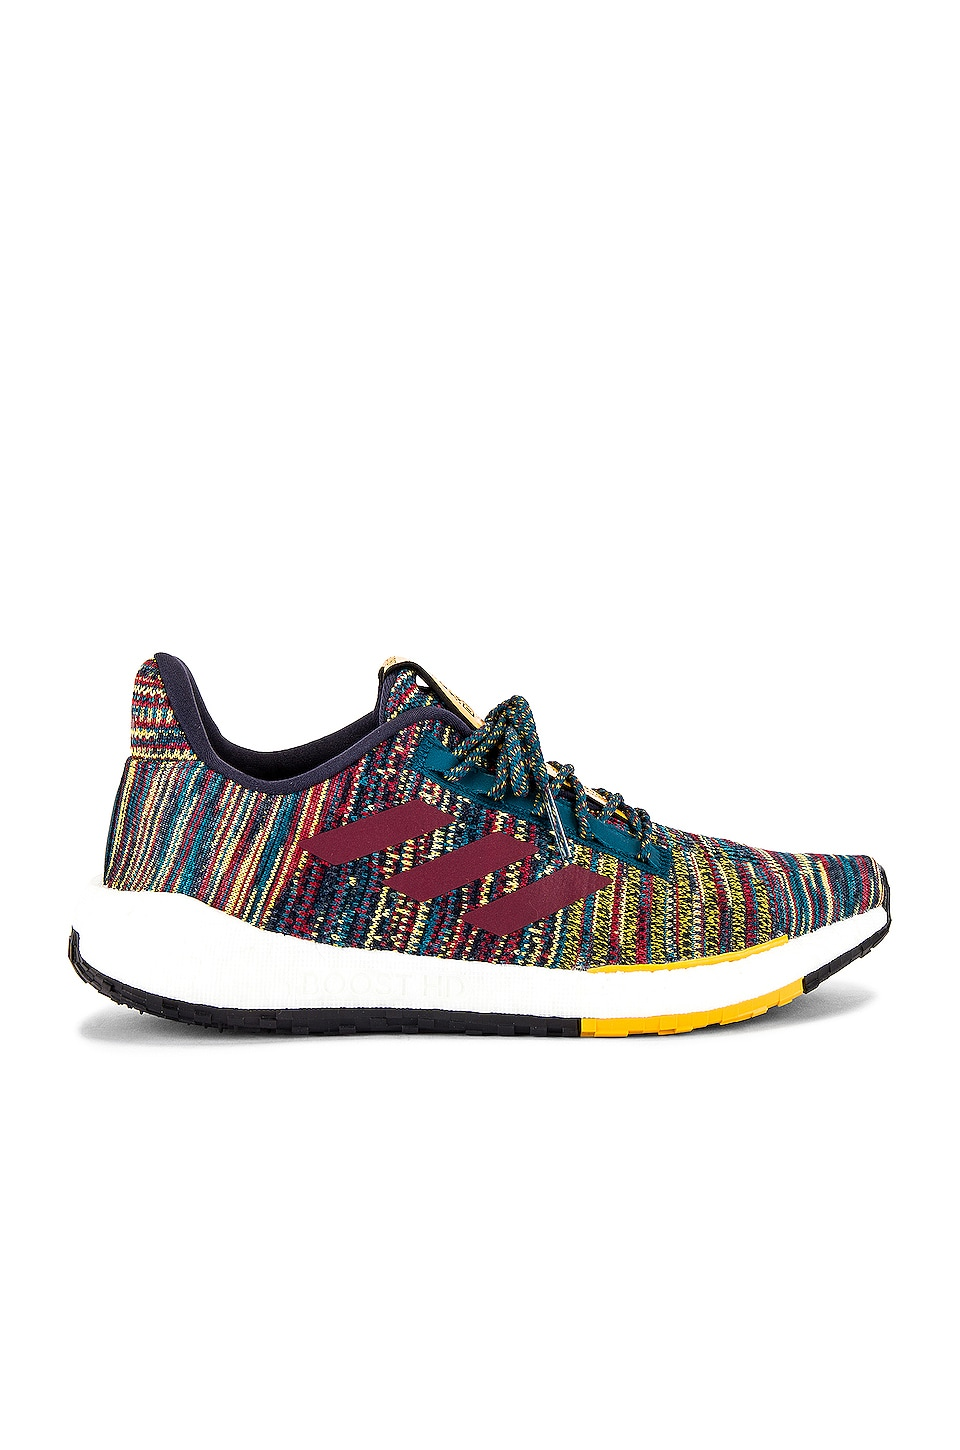 adidas by MISSONI Pulseboost HD in Tech Mineral & Collegiate Burgundy & Active Gold